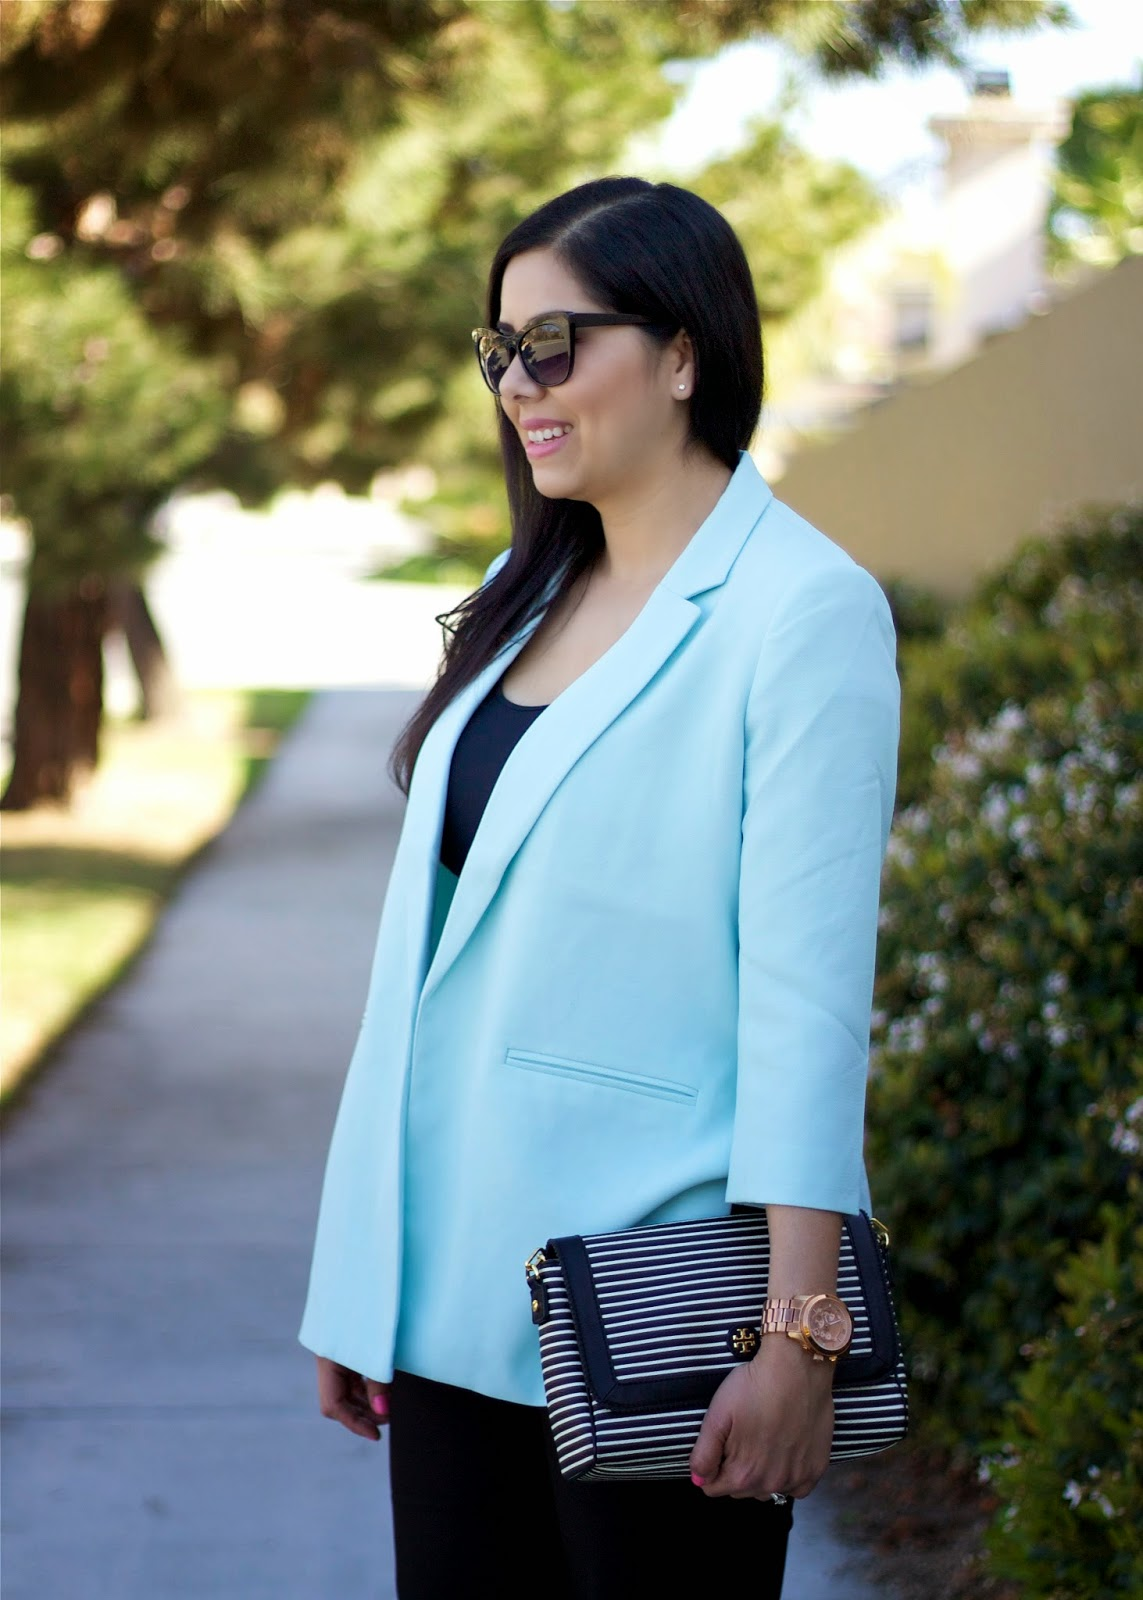 Forever 21 baby blue blazer, forever 21 cateye sunglasses, striped tory burch handbag, black and white striped purse, business attire in a chic way